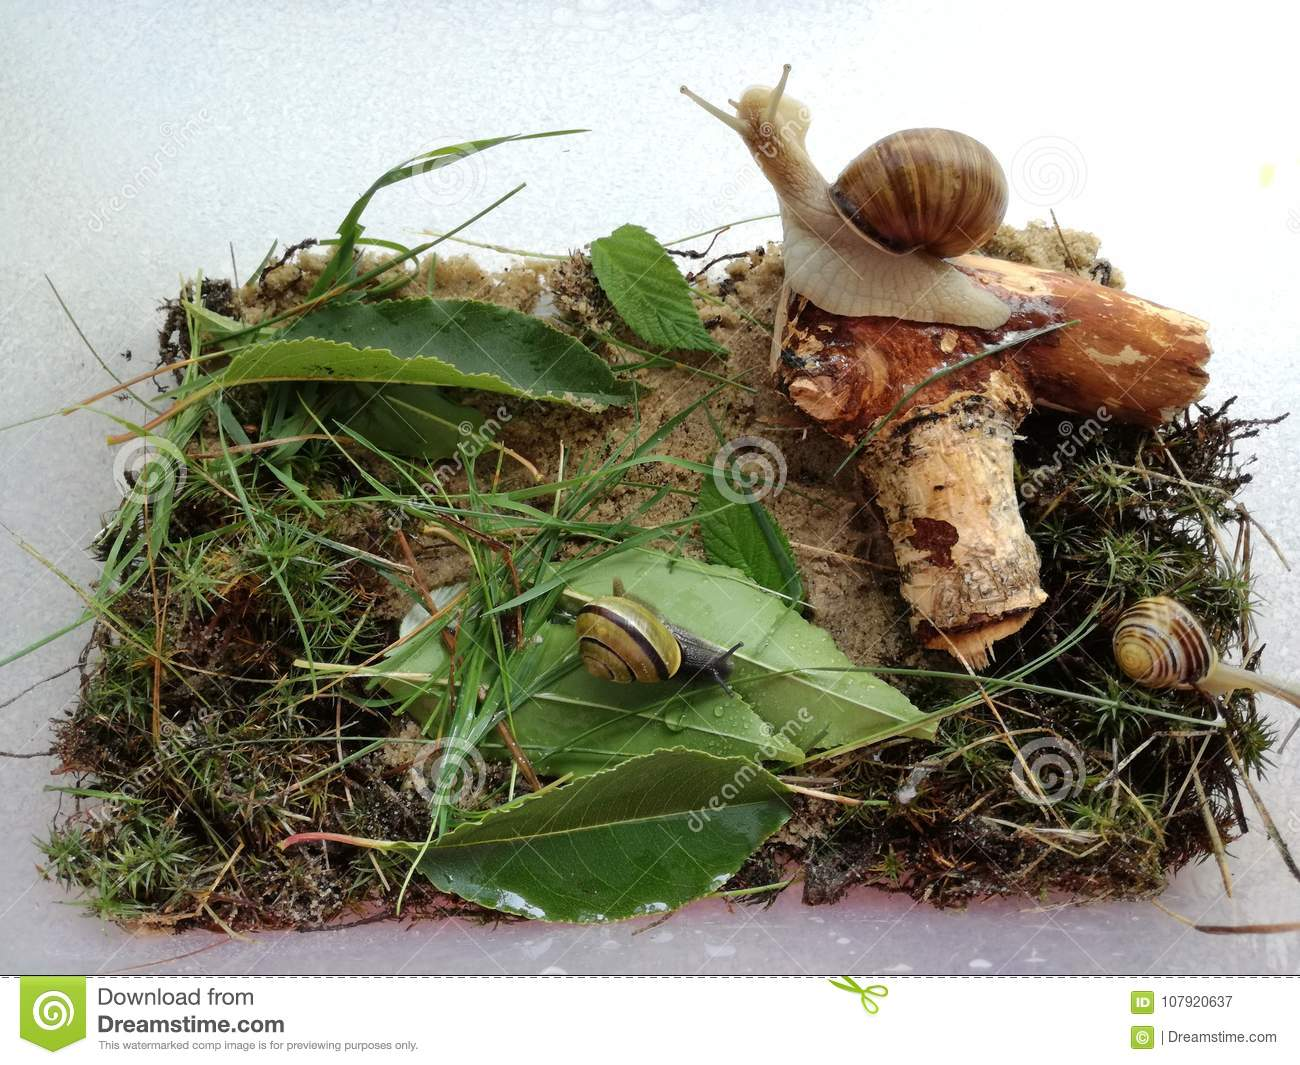 Microcosm Home Snails Three Snails In The Terrarium Stock Image Image Of Three Snails 107920637